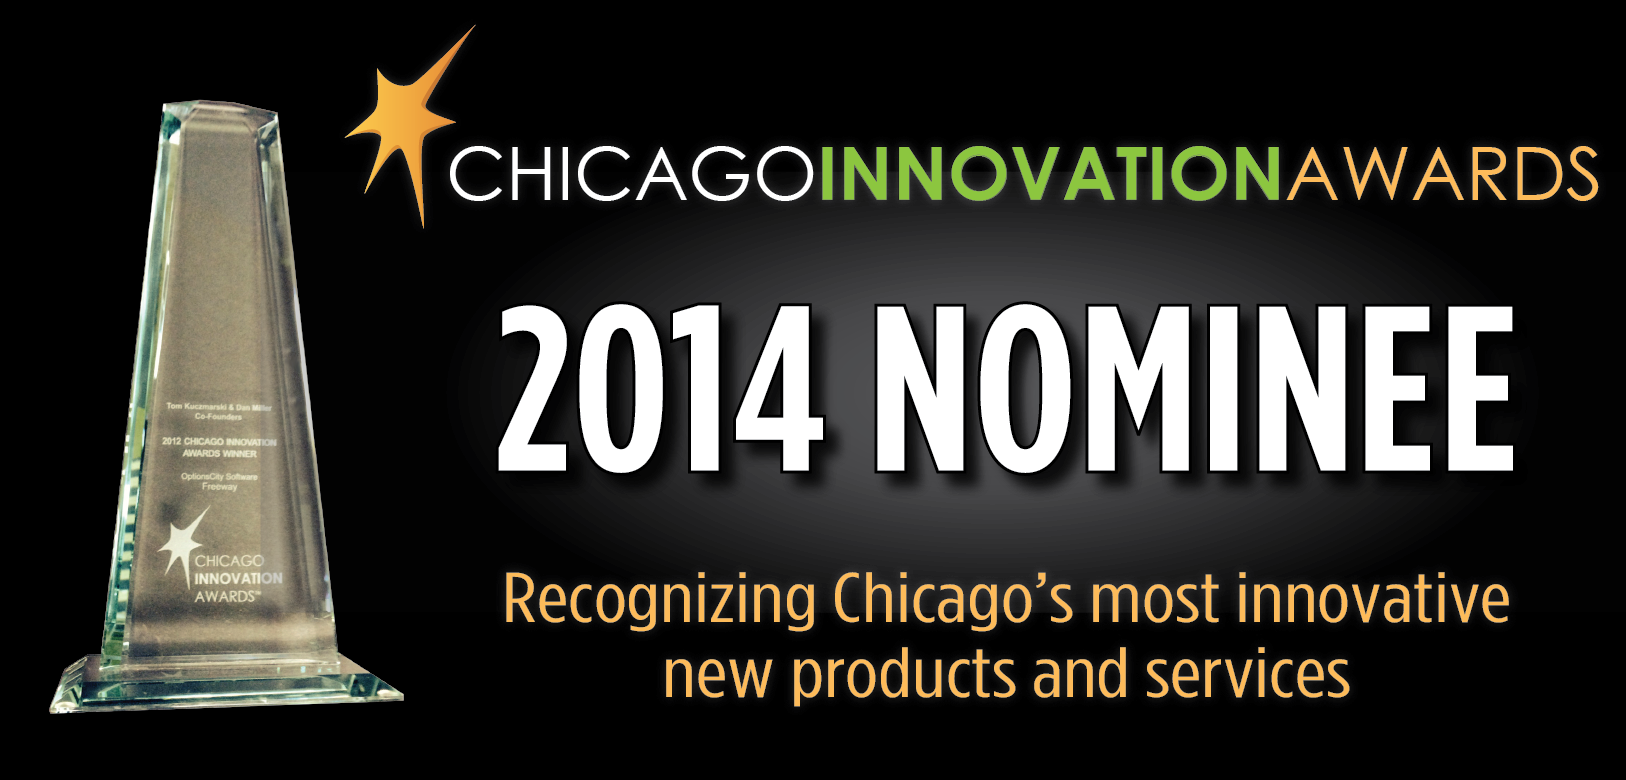 http://www.eventbrite.com/e/2014-nominee-reception-tickets-10610114137